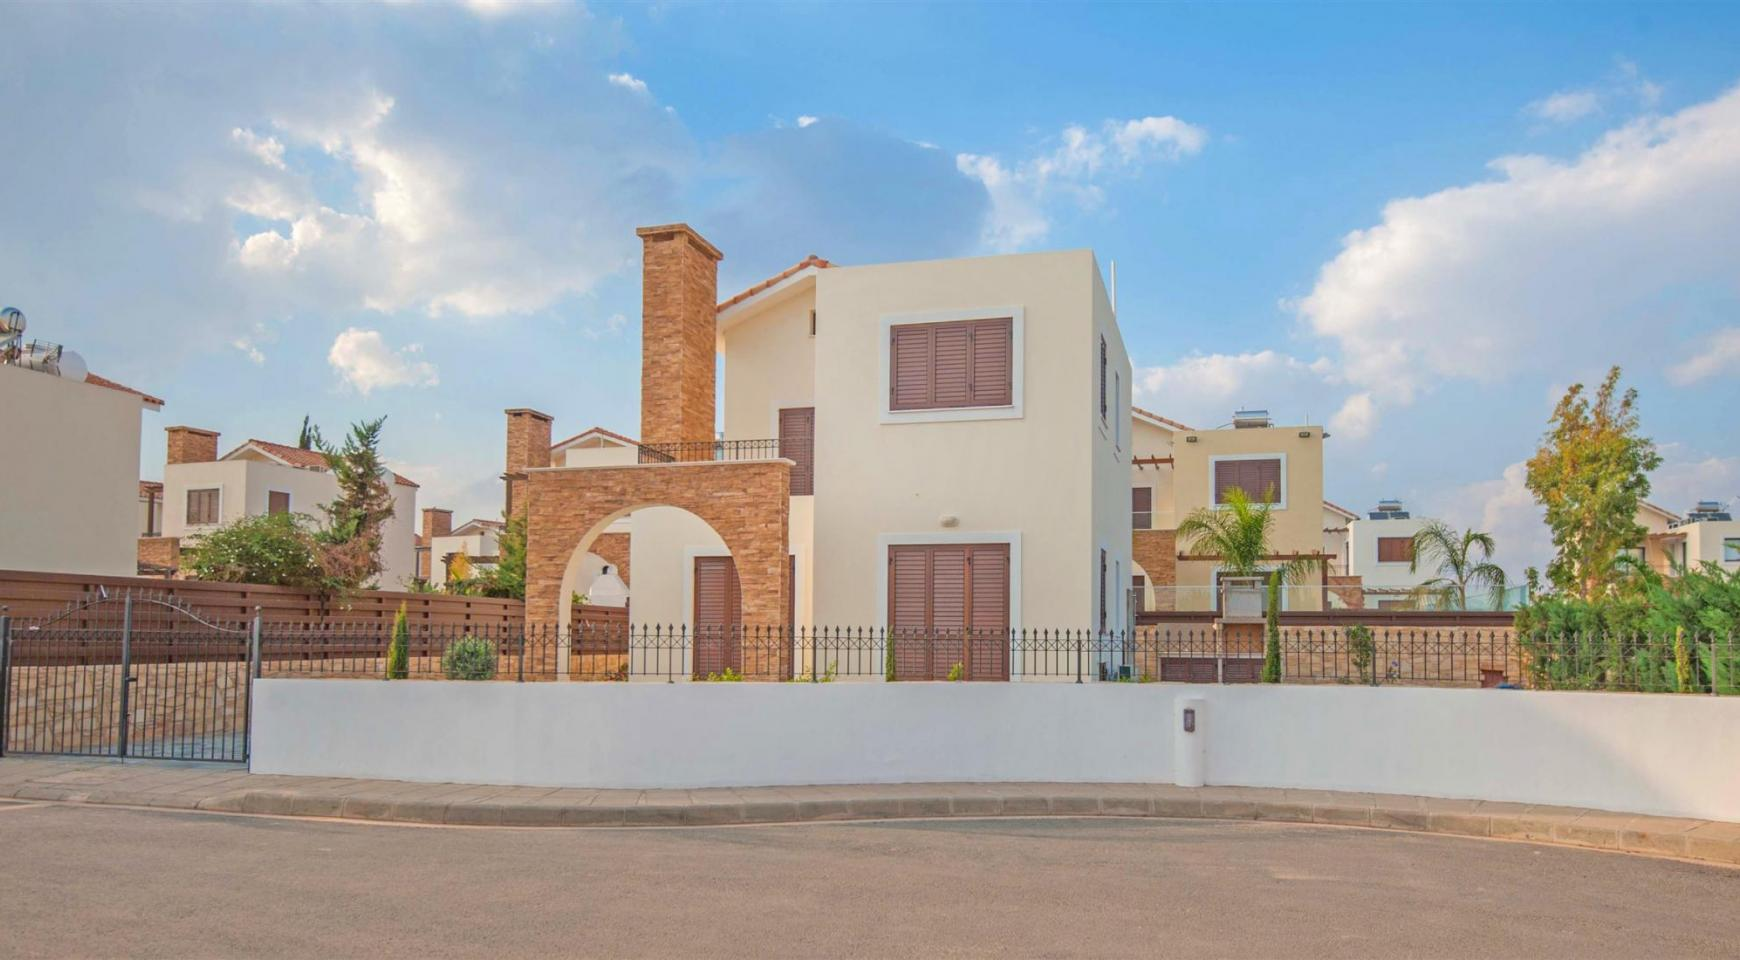 Detached 3 Bedroom Villa on the Seafront of Ayia Thekla - 15